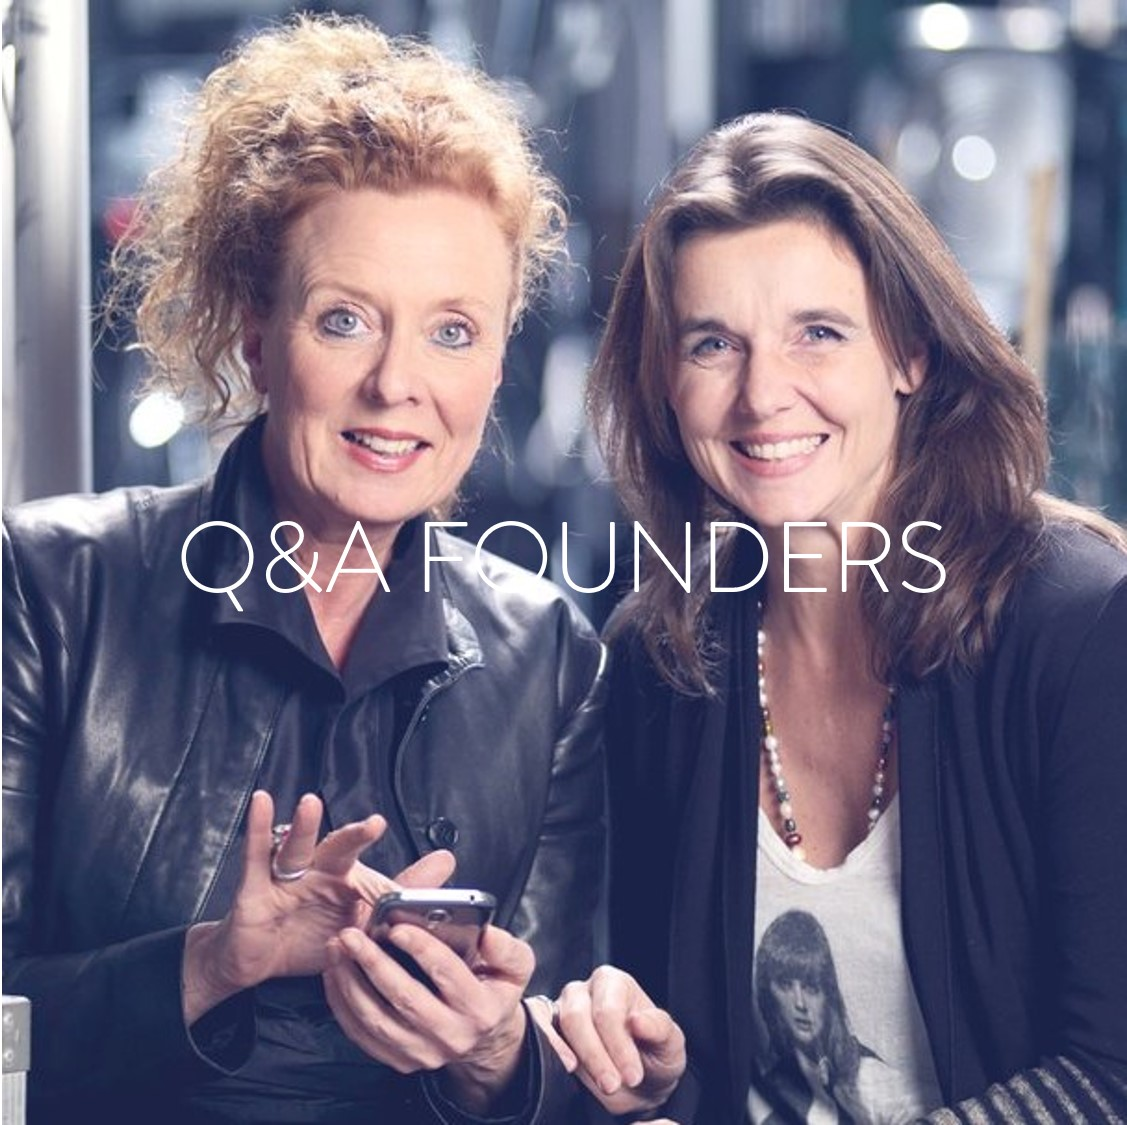 Q&A Founders